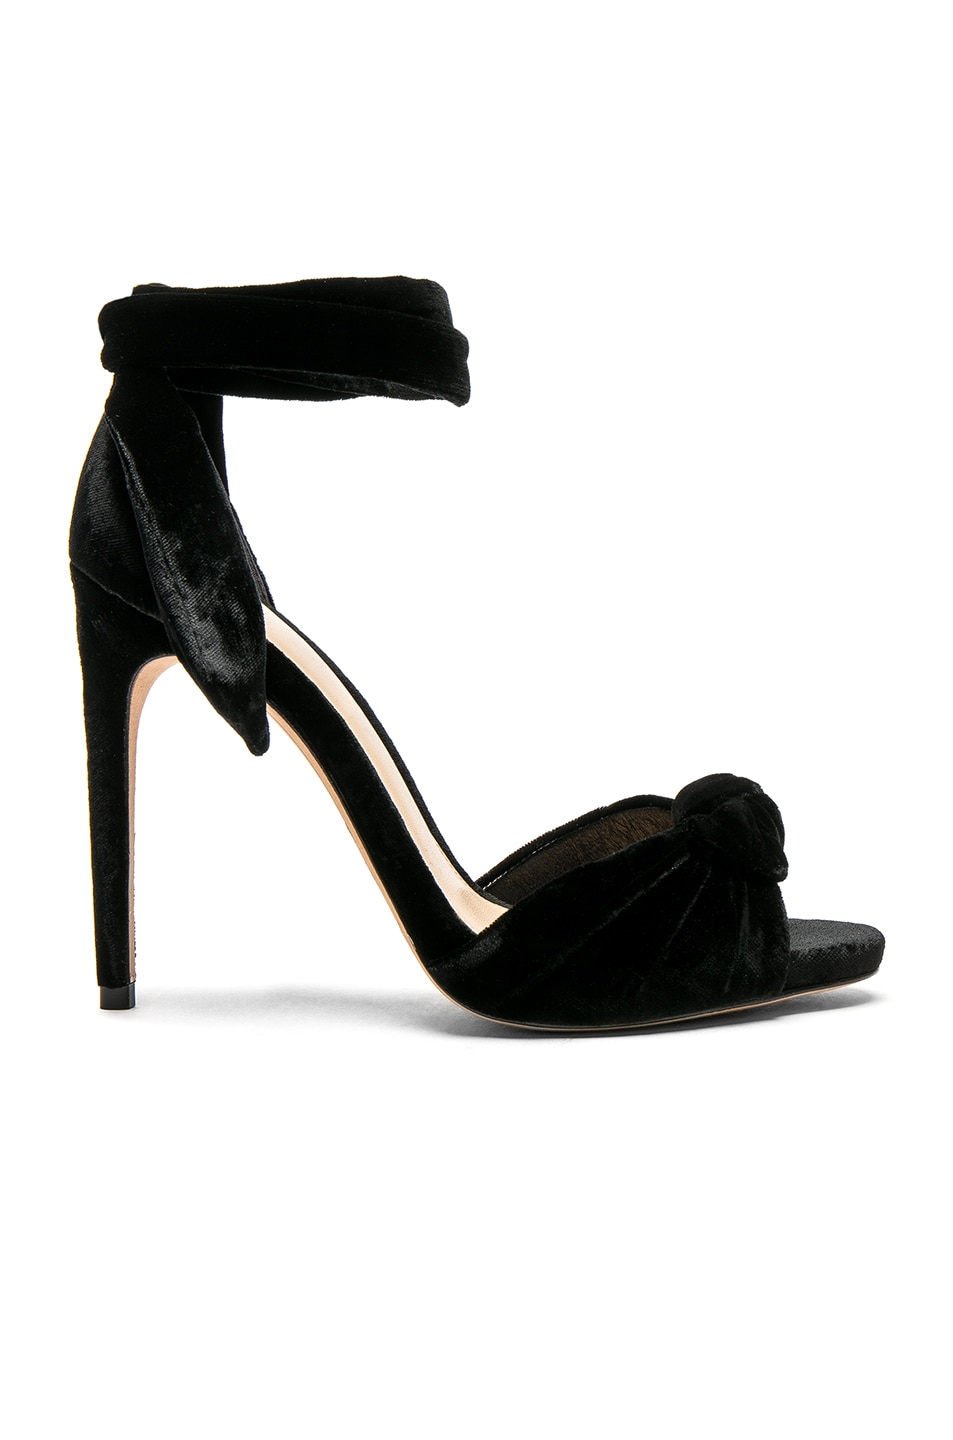 Image 1 of Alexandre Birman Velvet Jessica Heels in Black